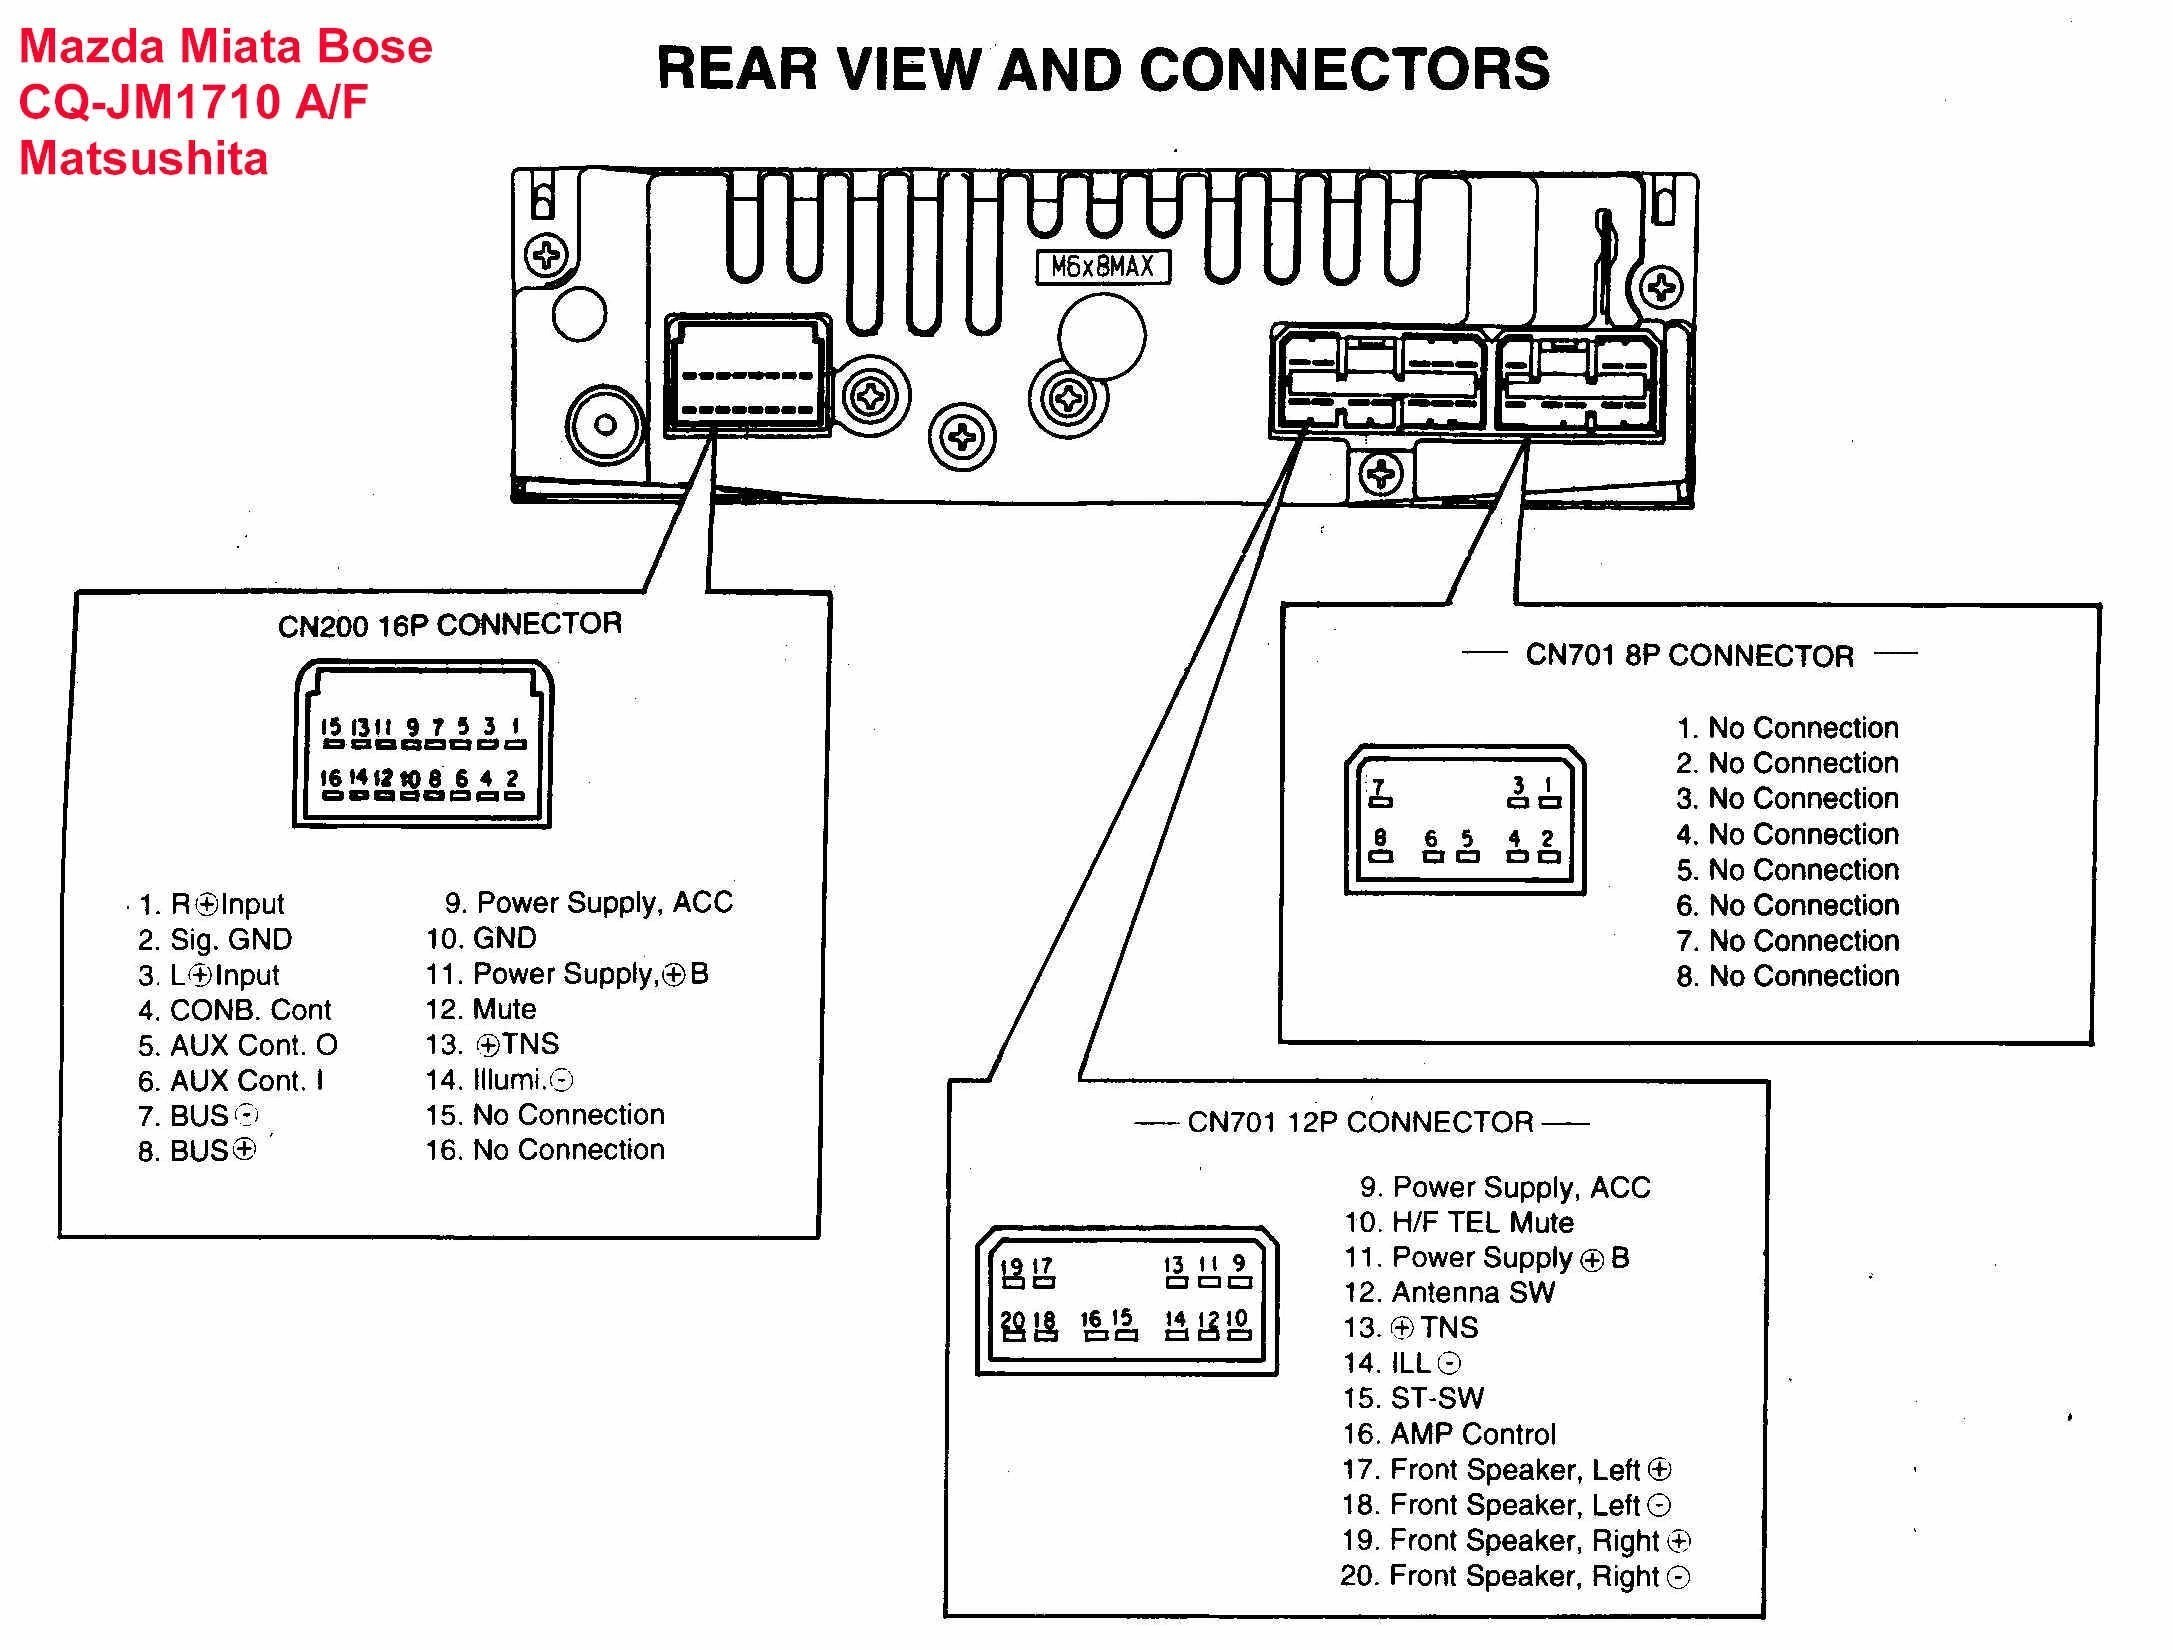 srs wiring diagram 05 bmw z4 wiring diagram blogsrs wiring diagram 05 bmw z4 wiring diagrams 2004 bmw z4 wiring diagram srs wiring diagram 05 bmw z4